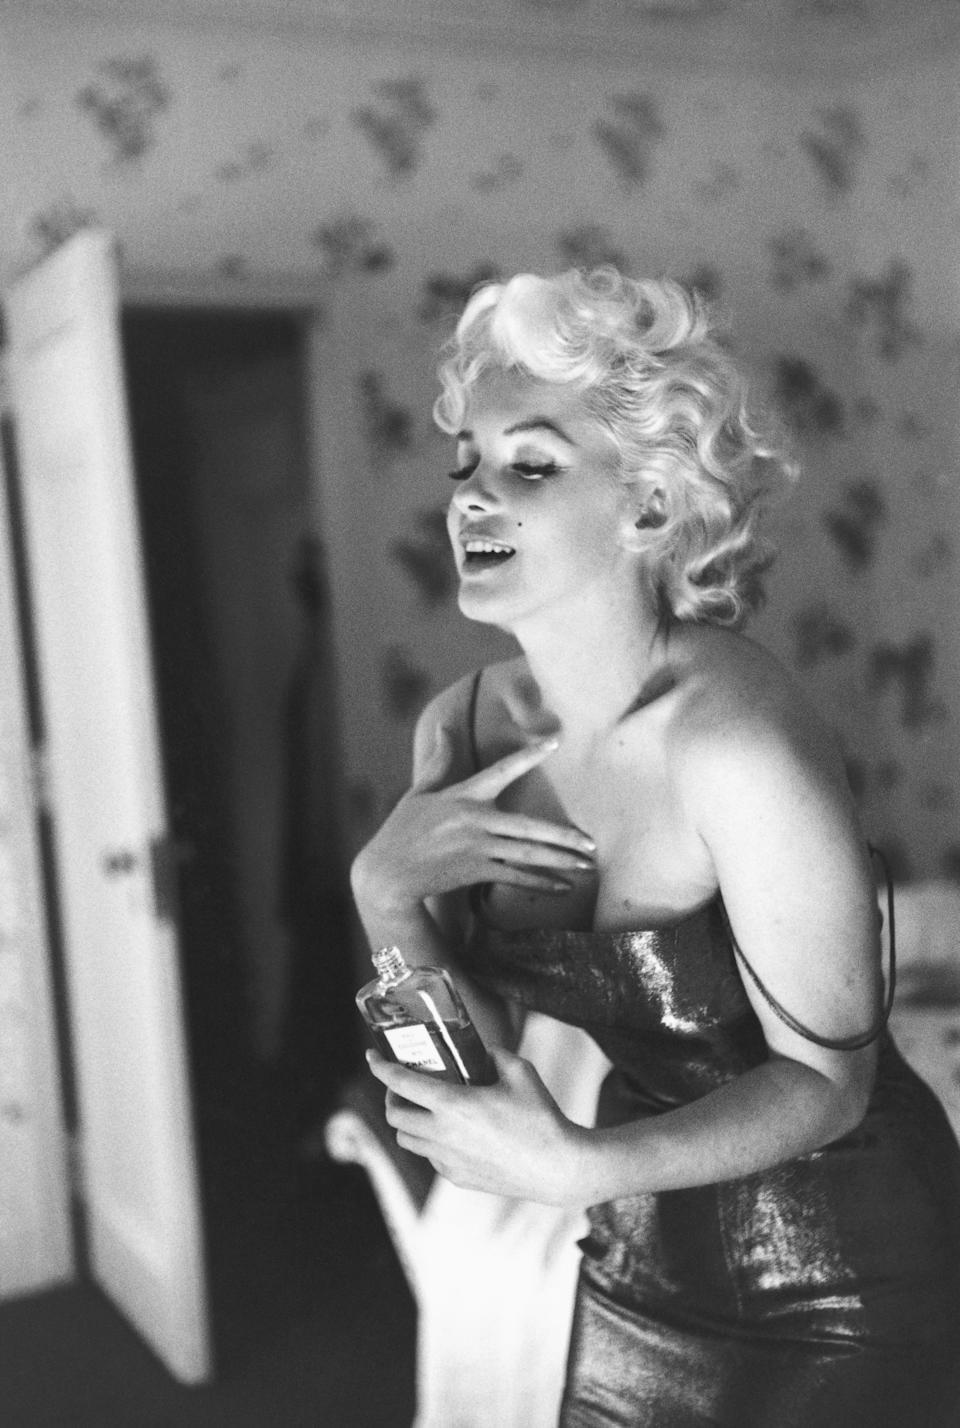 Marilyn Monroe posa con una botella de Chanel No. 5 en 1955. (Photo by Ed Feingersh/Michael Ochs Archives/Getty Images)